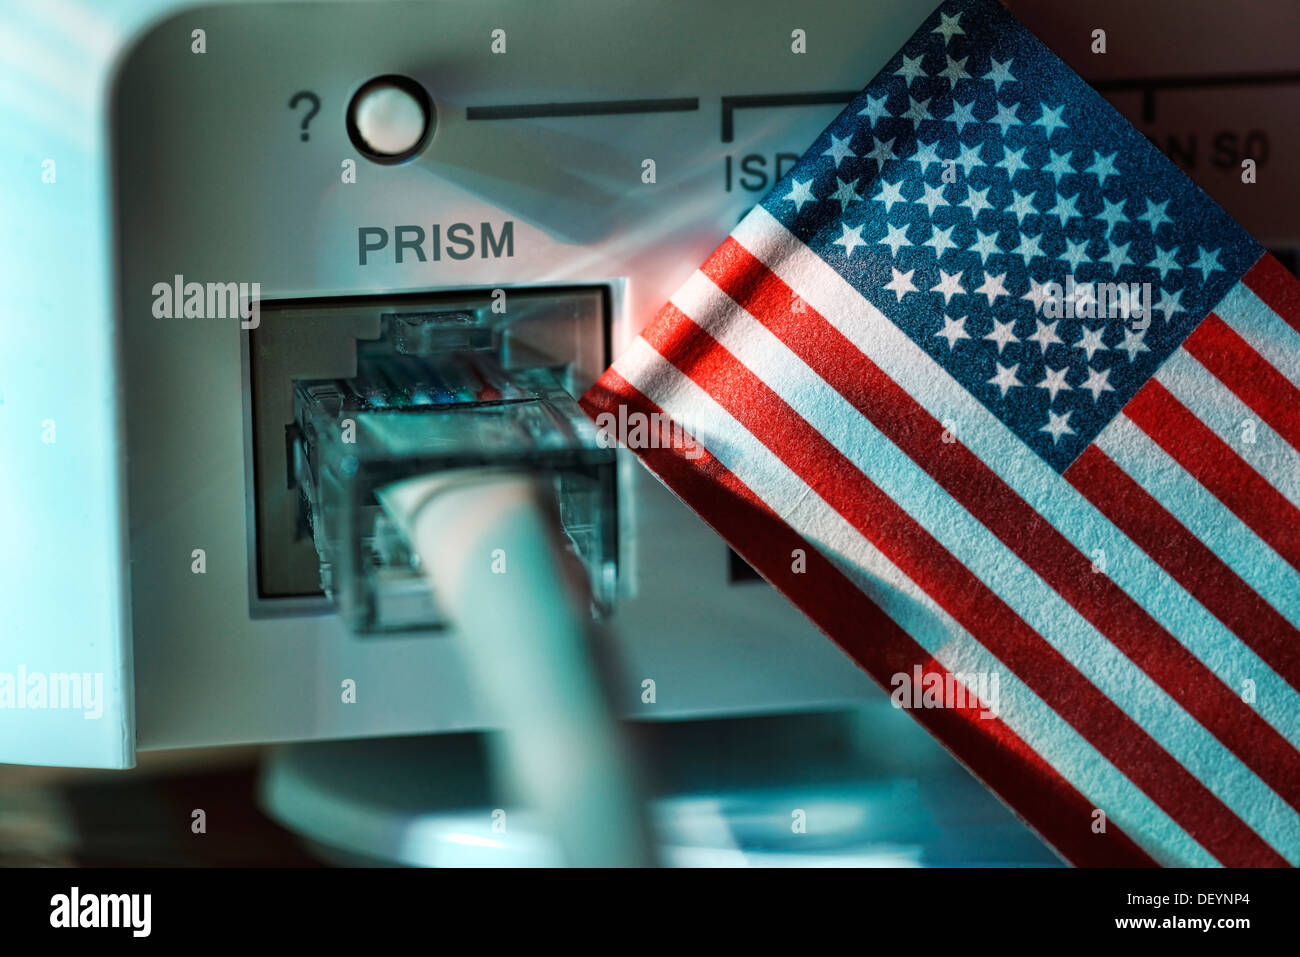 Internet cable in a modem and USA flag, symbolic photo listening scandal Prism, Internetkabel an einem Modem und USA-Fahne, Symb - Stock Image